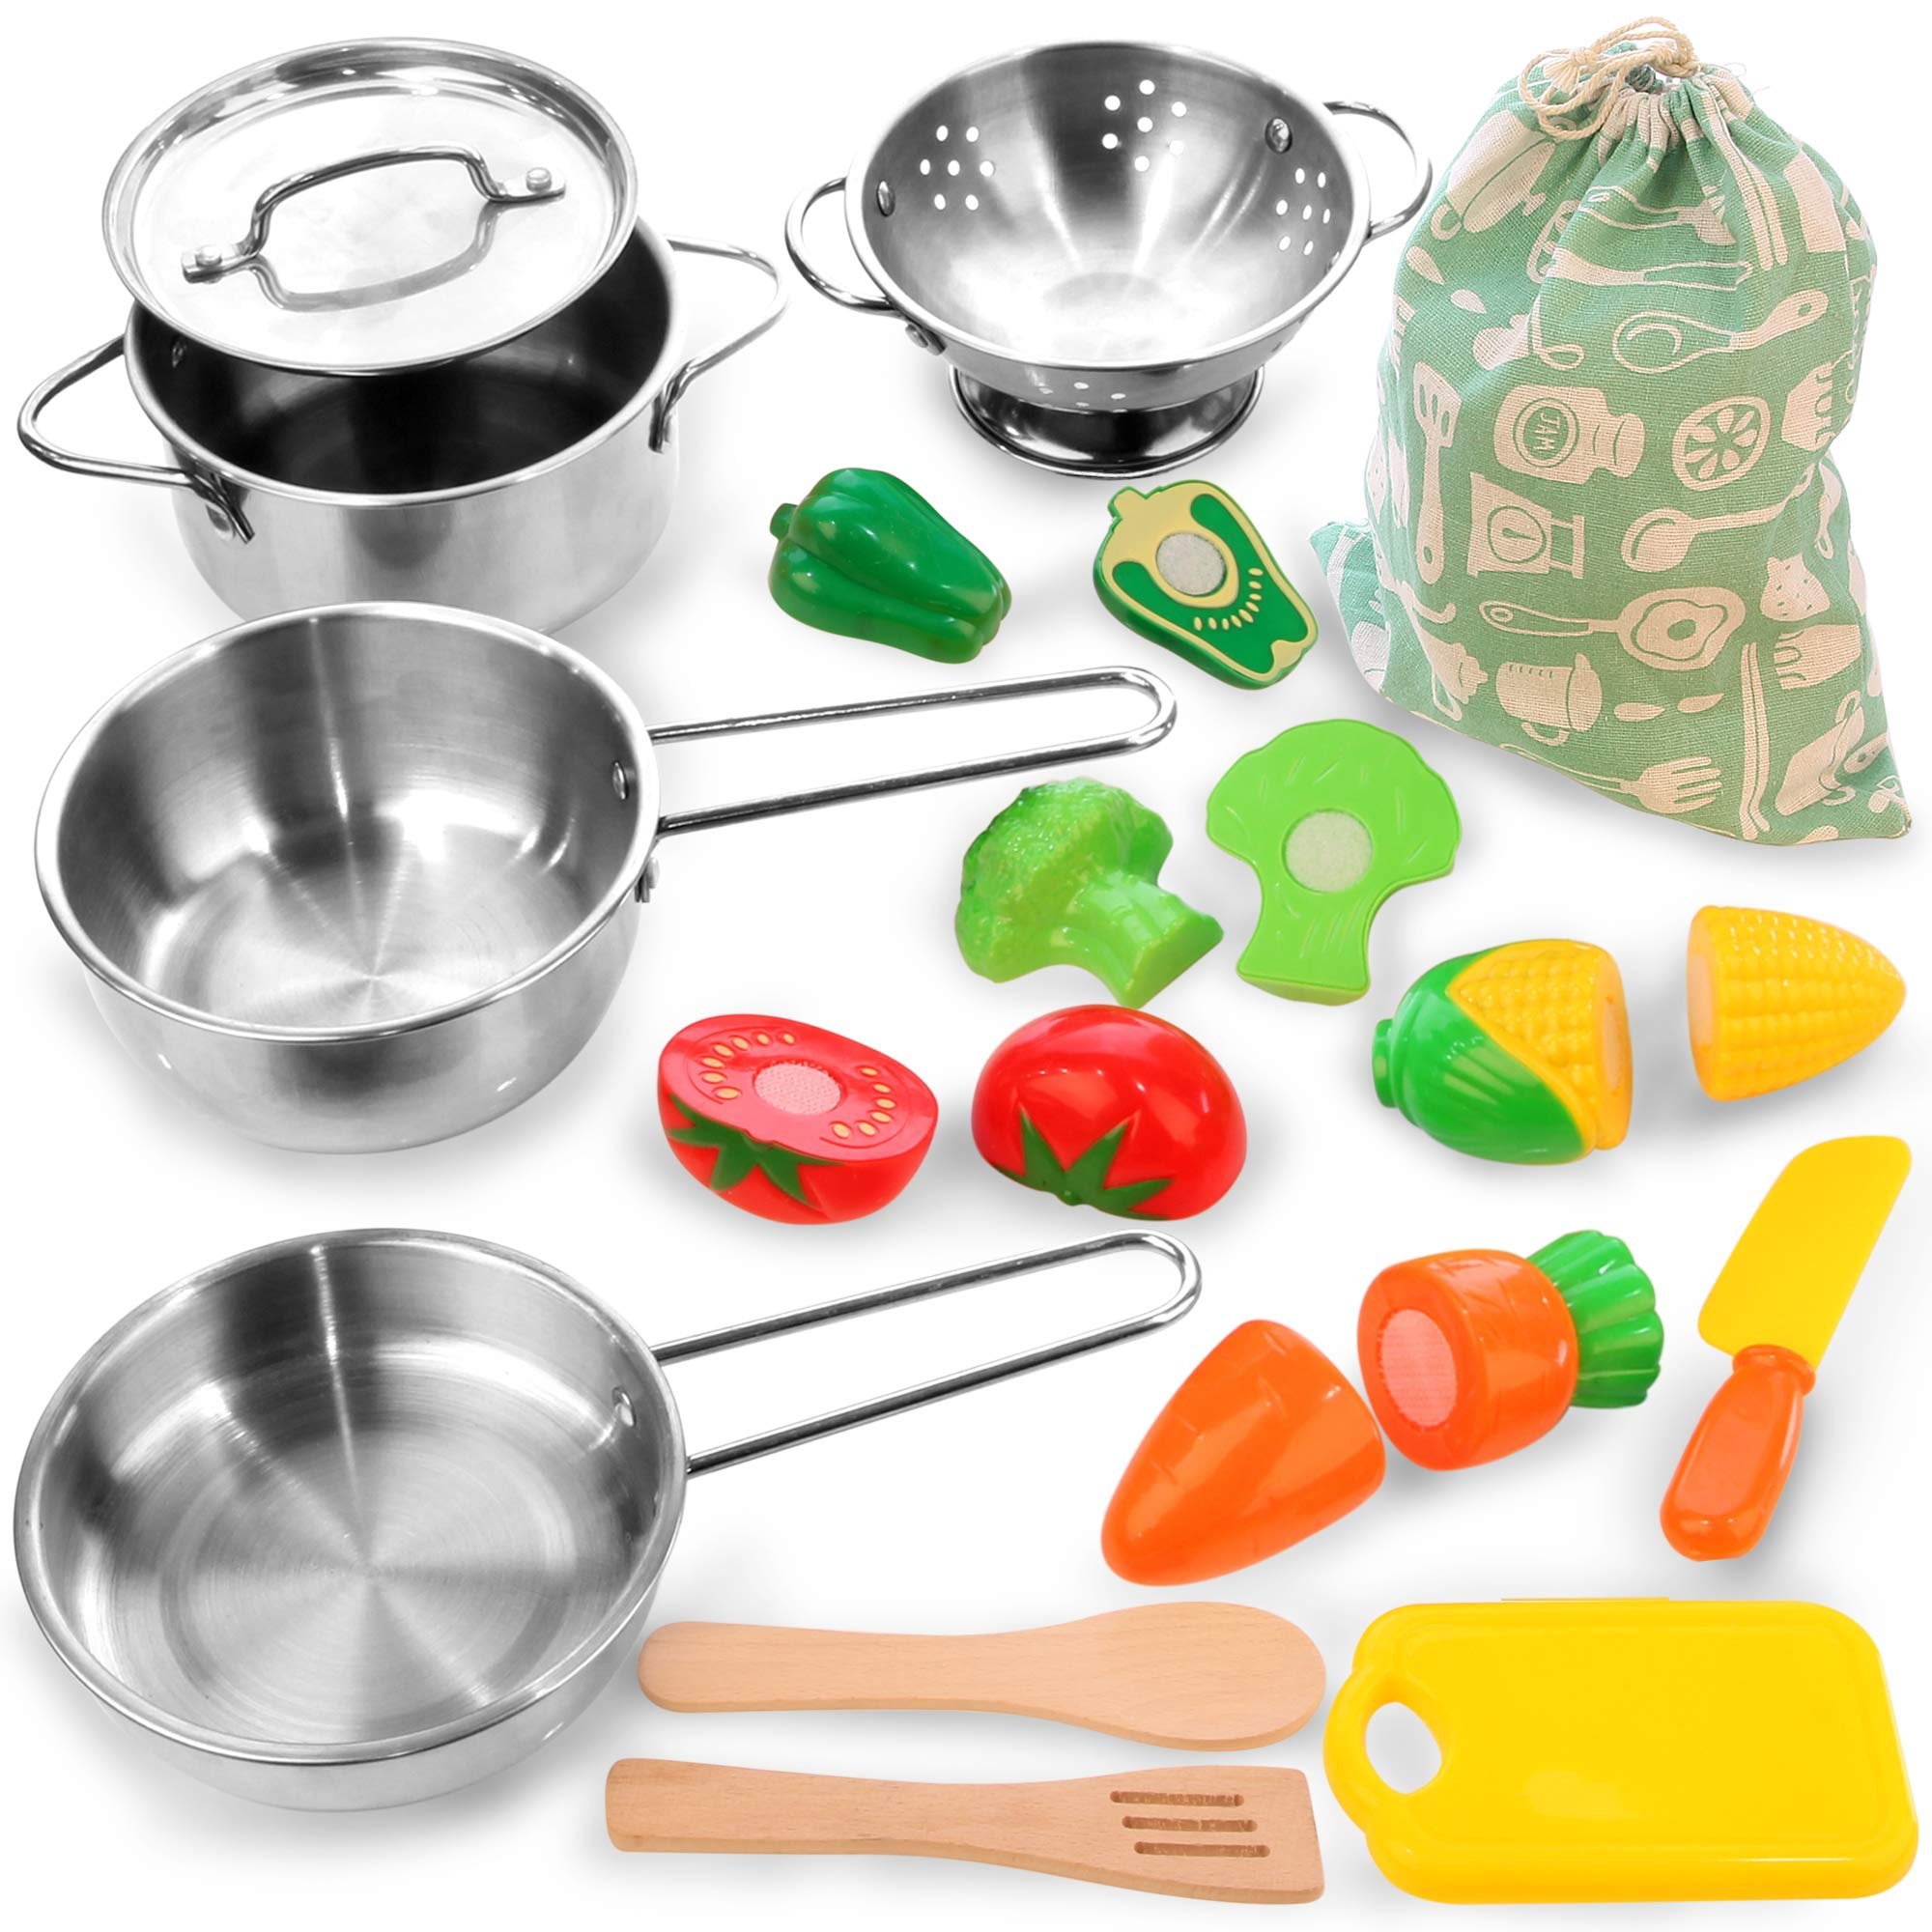 KRATO Kids Pots and Pans Toys with Cutting Play Food - Kitchen Playset Pretend Cookware Big Stainless Steel Cooking Utensils Development for Toddlers & Children Boys Girls Ages 3 Years and up